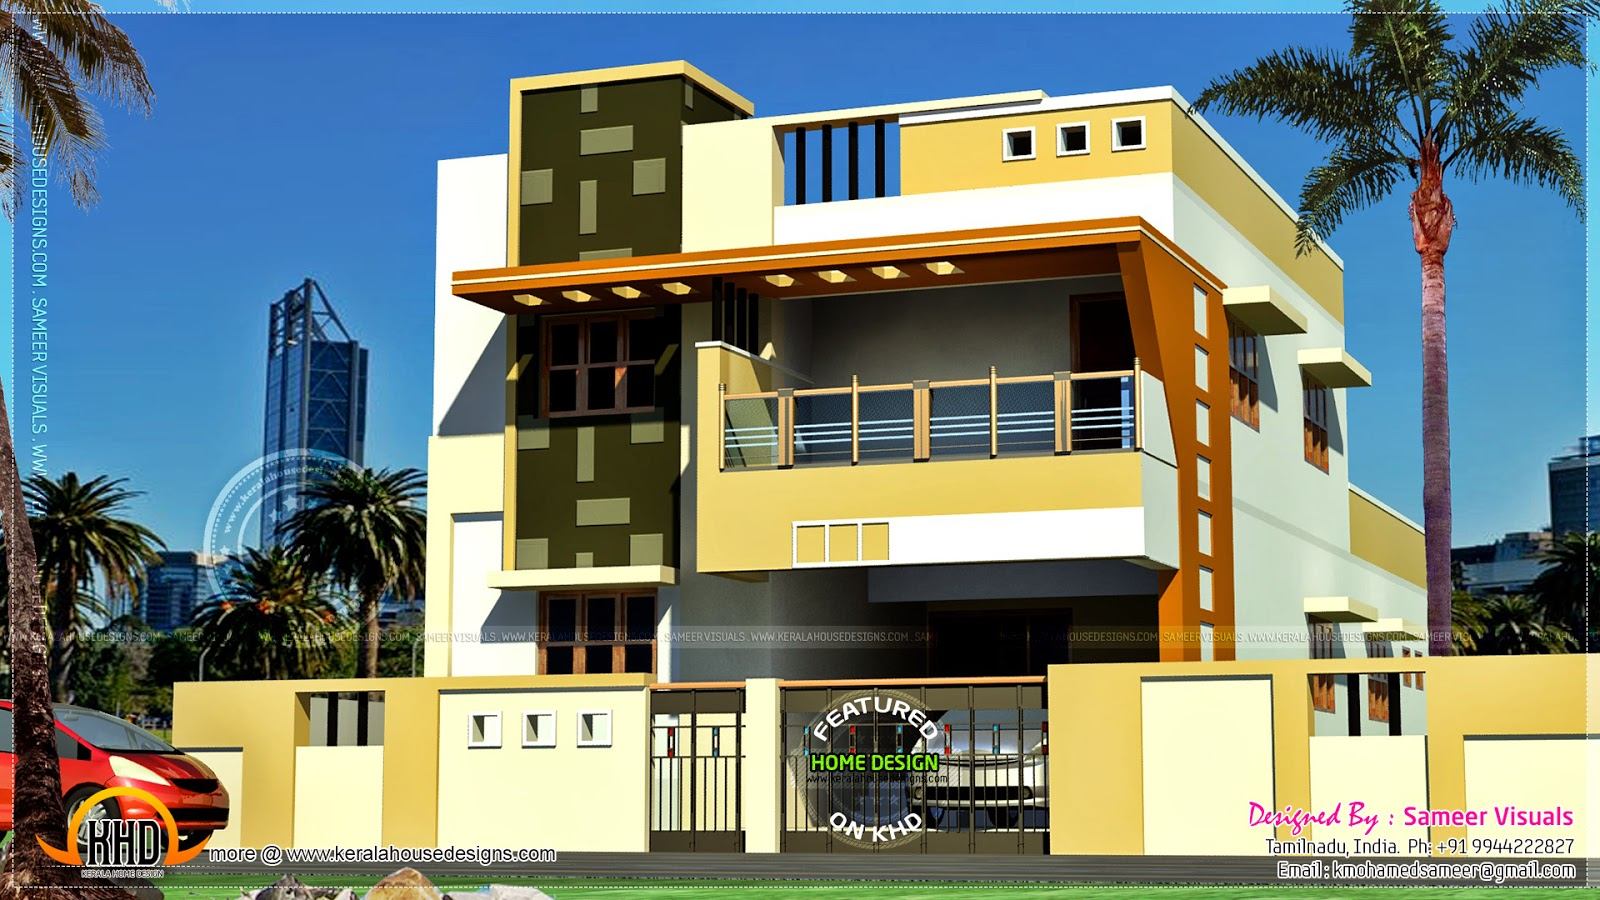 modern south indian house design kerala home design and floor plans